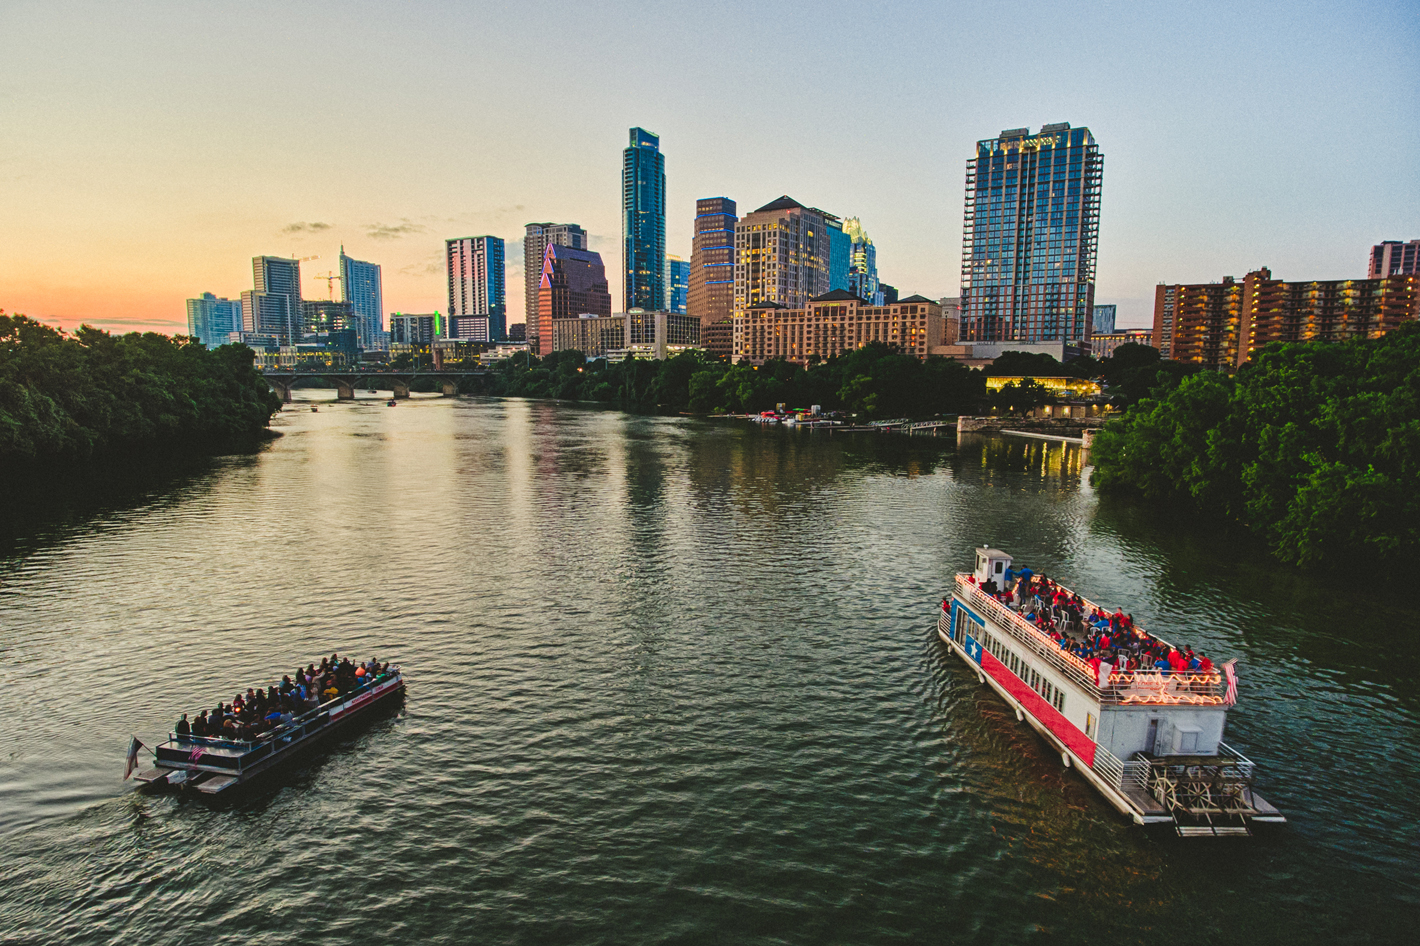 Boats on Lady Bird Lake in Austin, TX